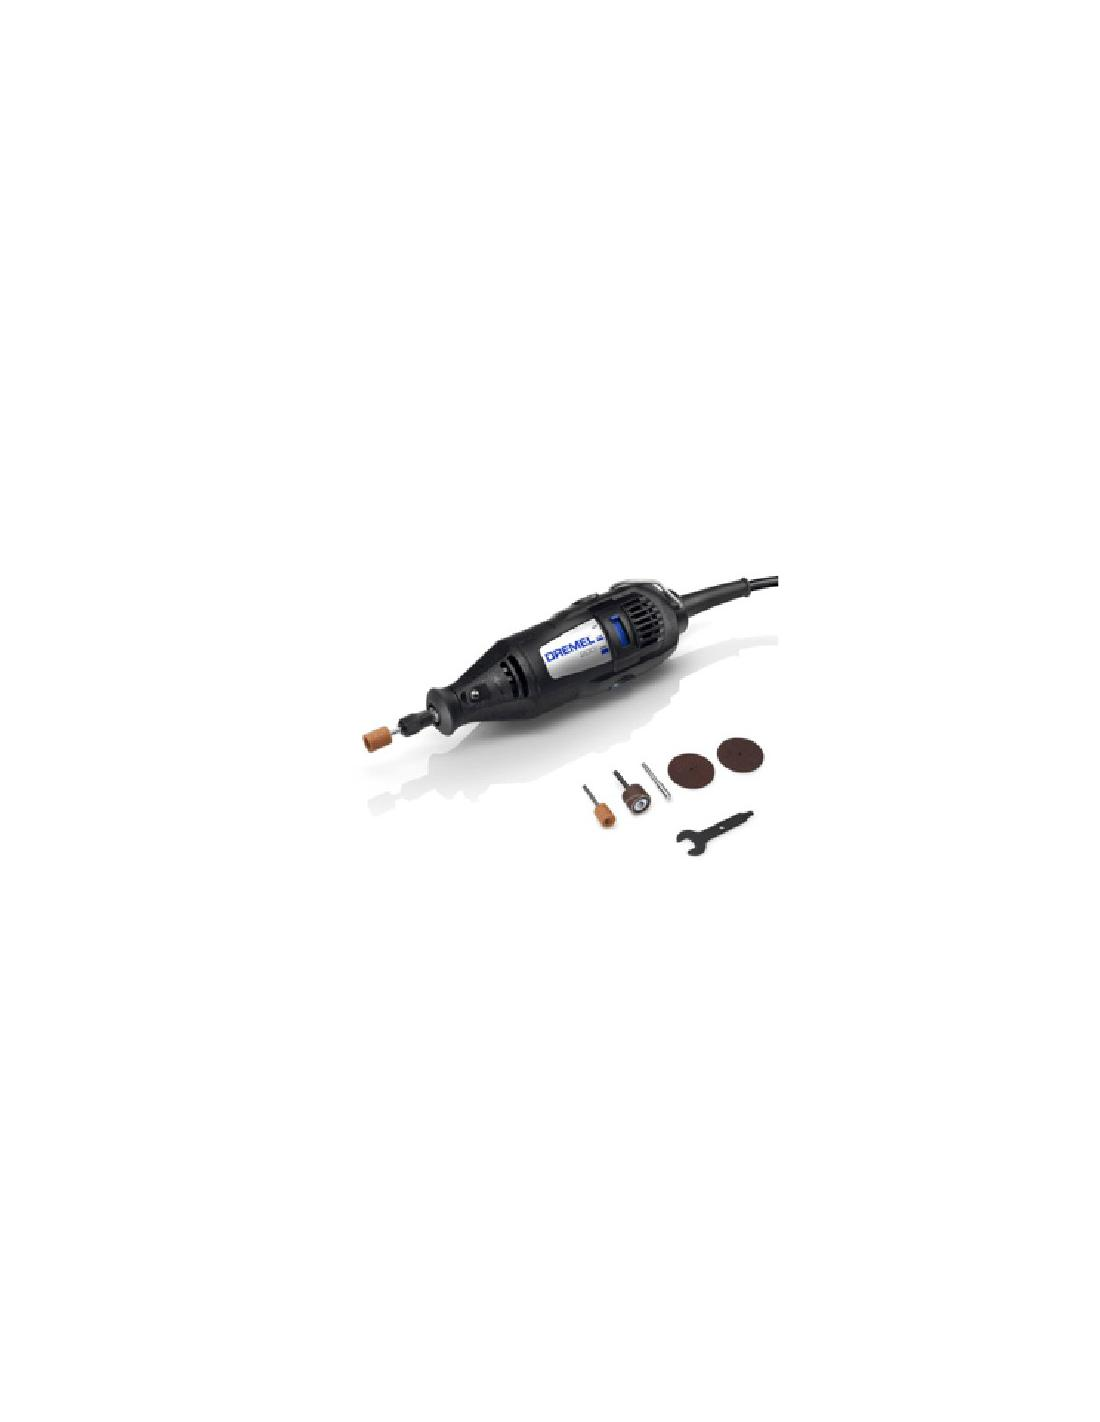 DREMEL MINI PERCEUSE 200-5 SERIE - 1